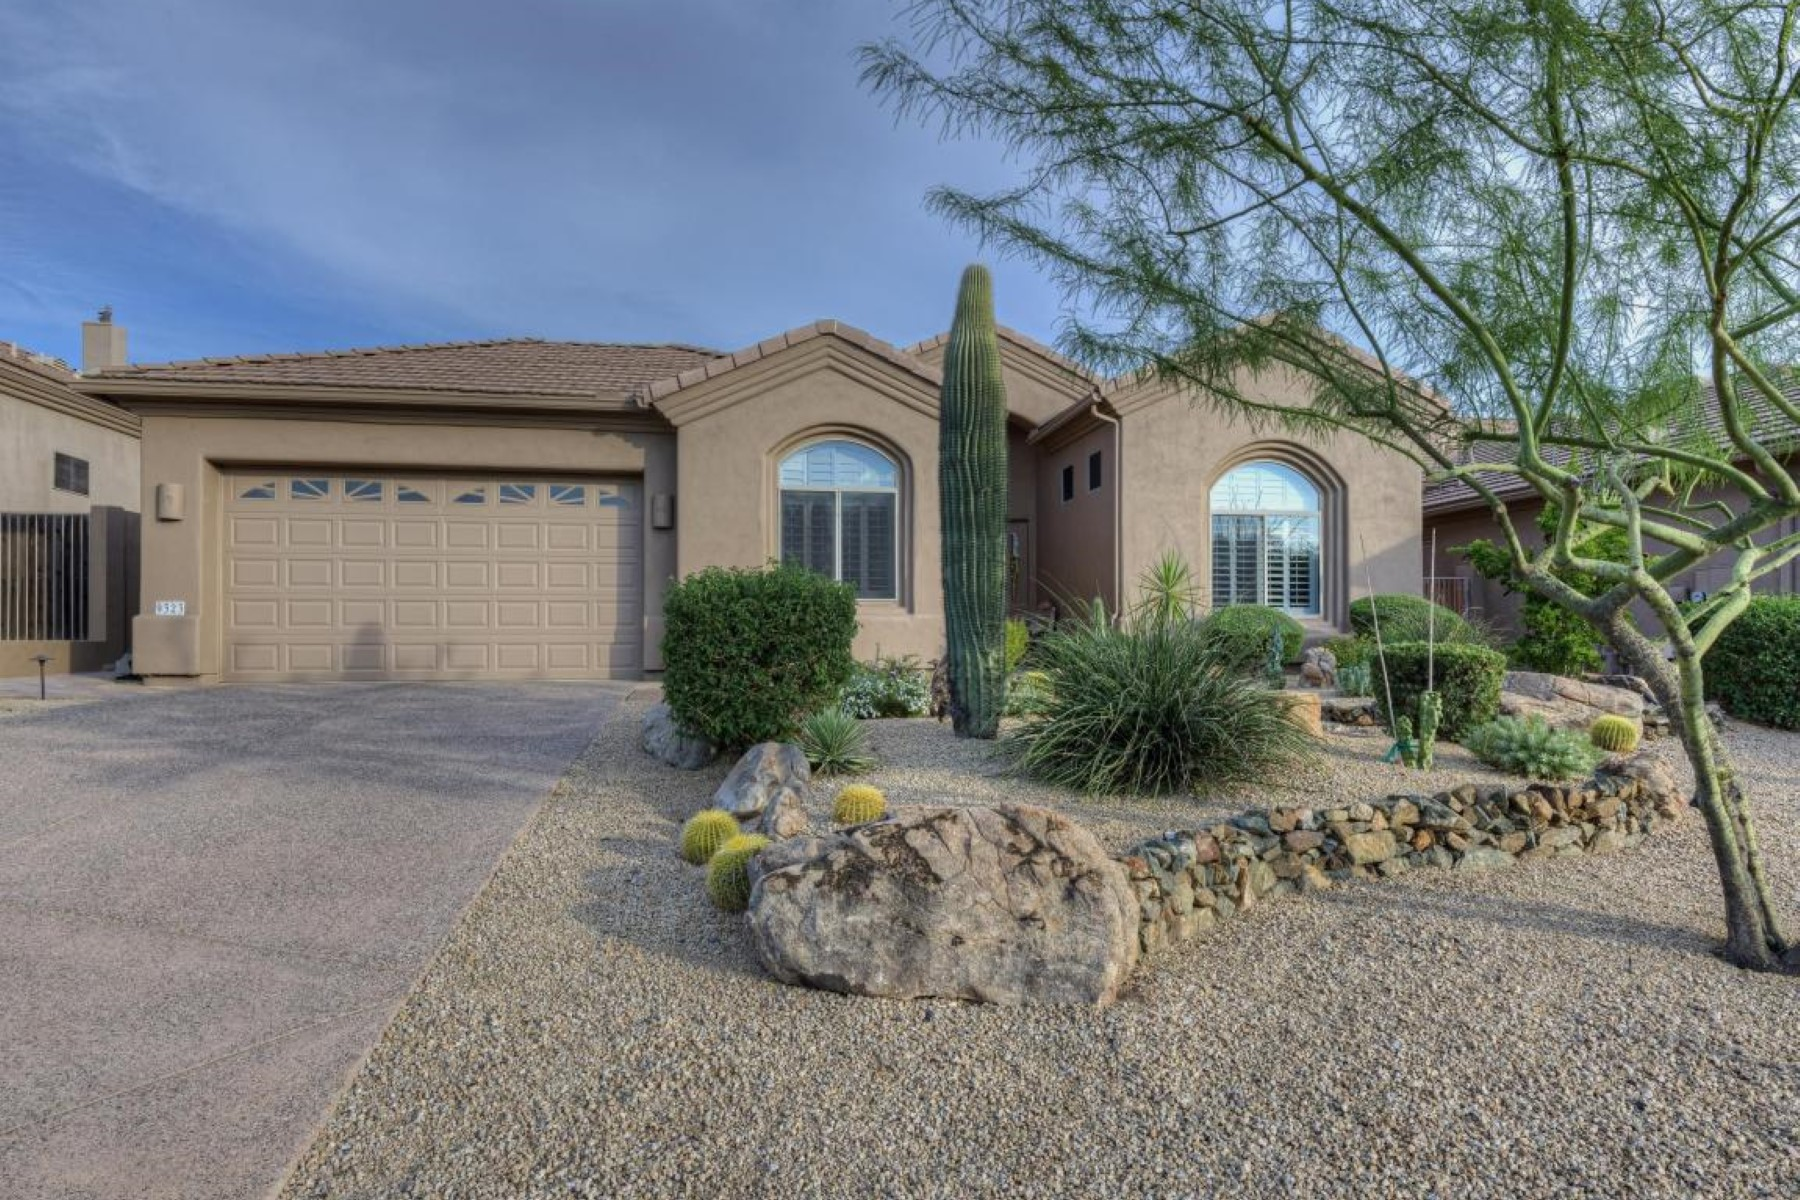 sales property at Beautiful home that overlooks lush desertscape to the fairway beyond